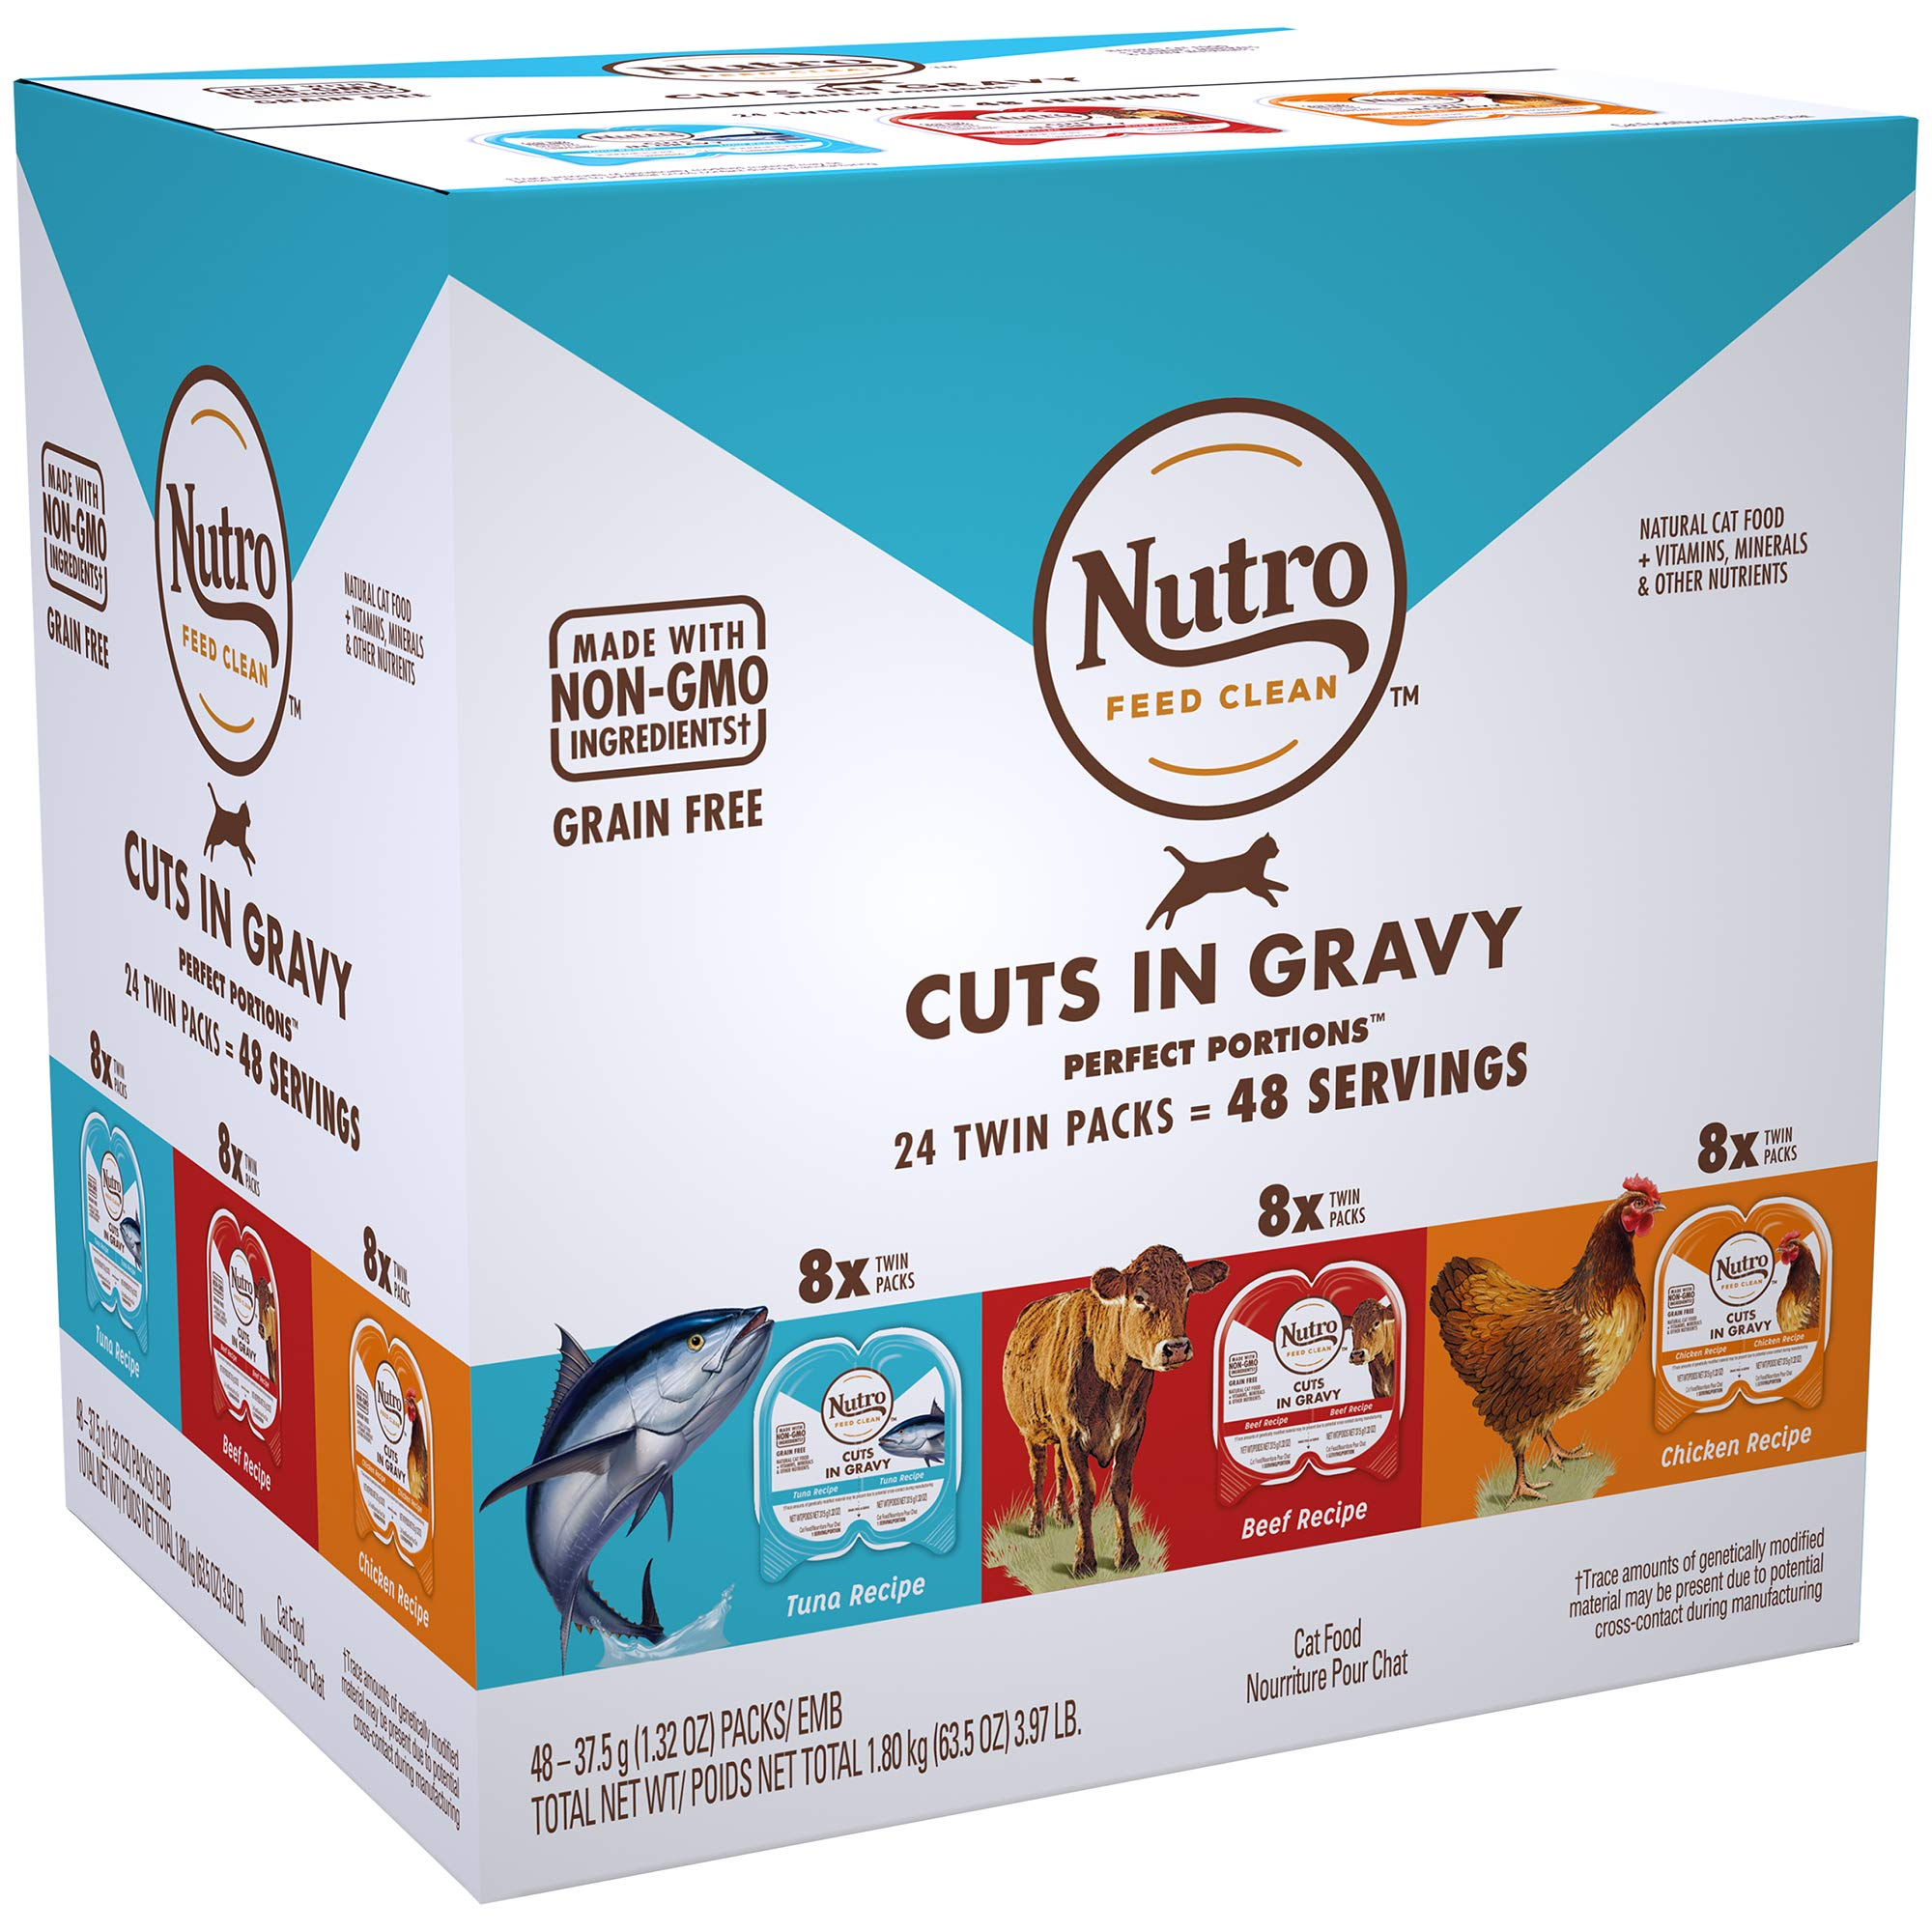 NUTRO PERFECT PORTIONS Grain Free Natural Adult Wet Cat Food Cuts in Gravy Real Beef, Real Tuna, and Real Chicken Recipes Variety Pack, (24) 2.6 oz. Twin-Pack Trays by Nutro